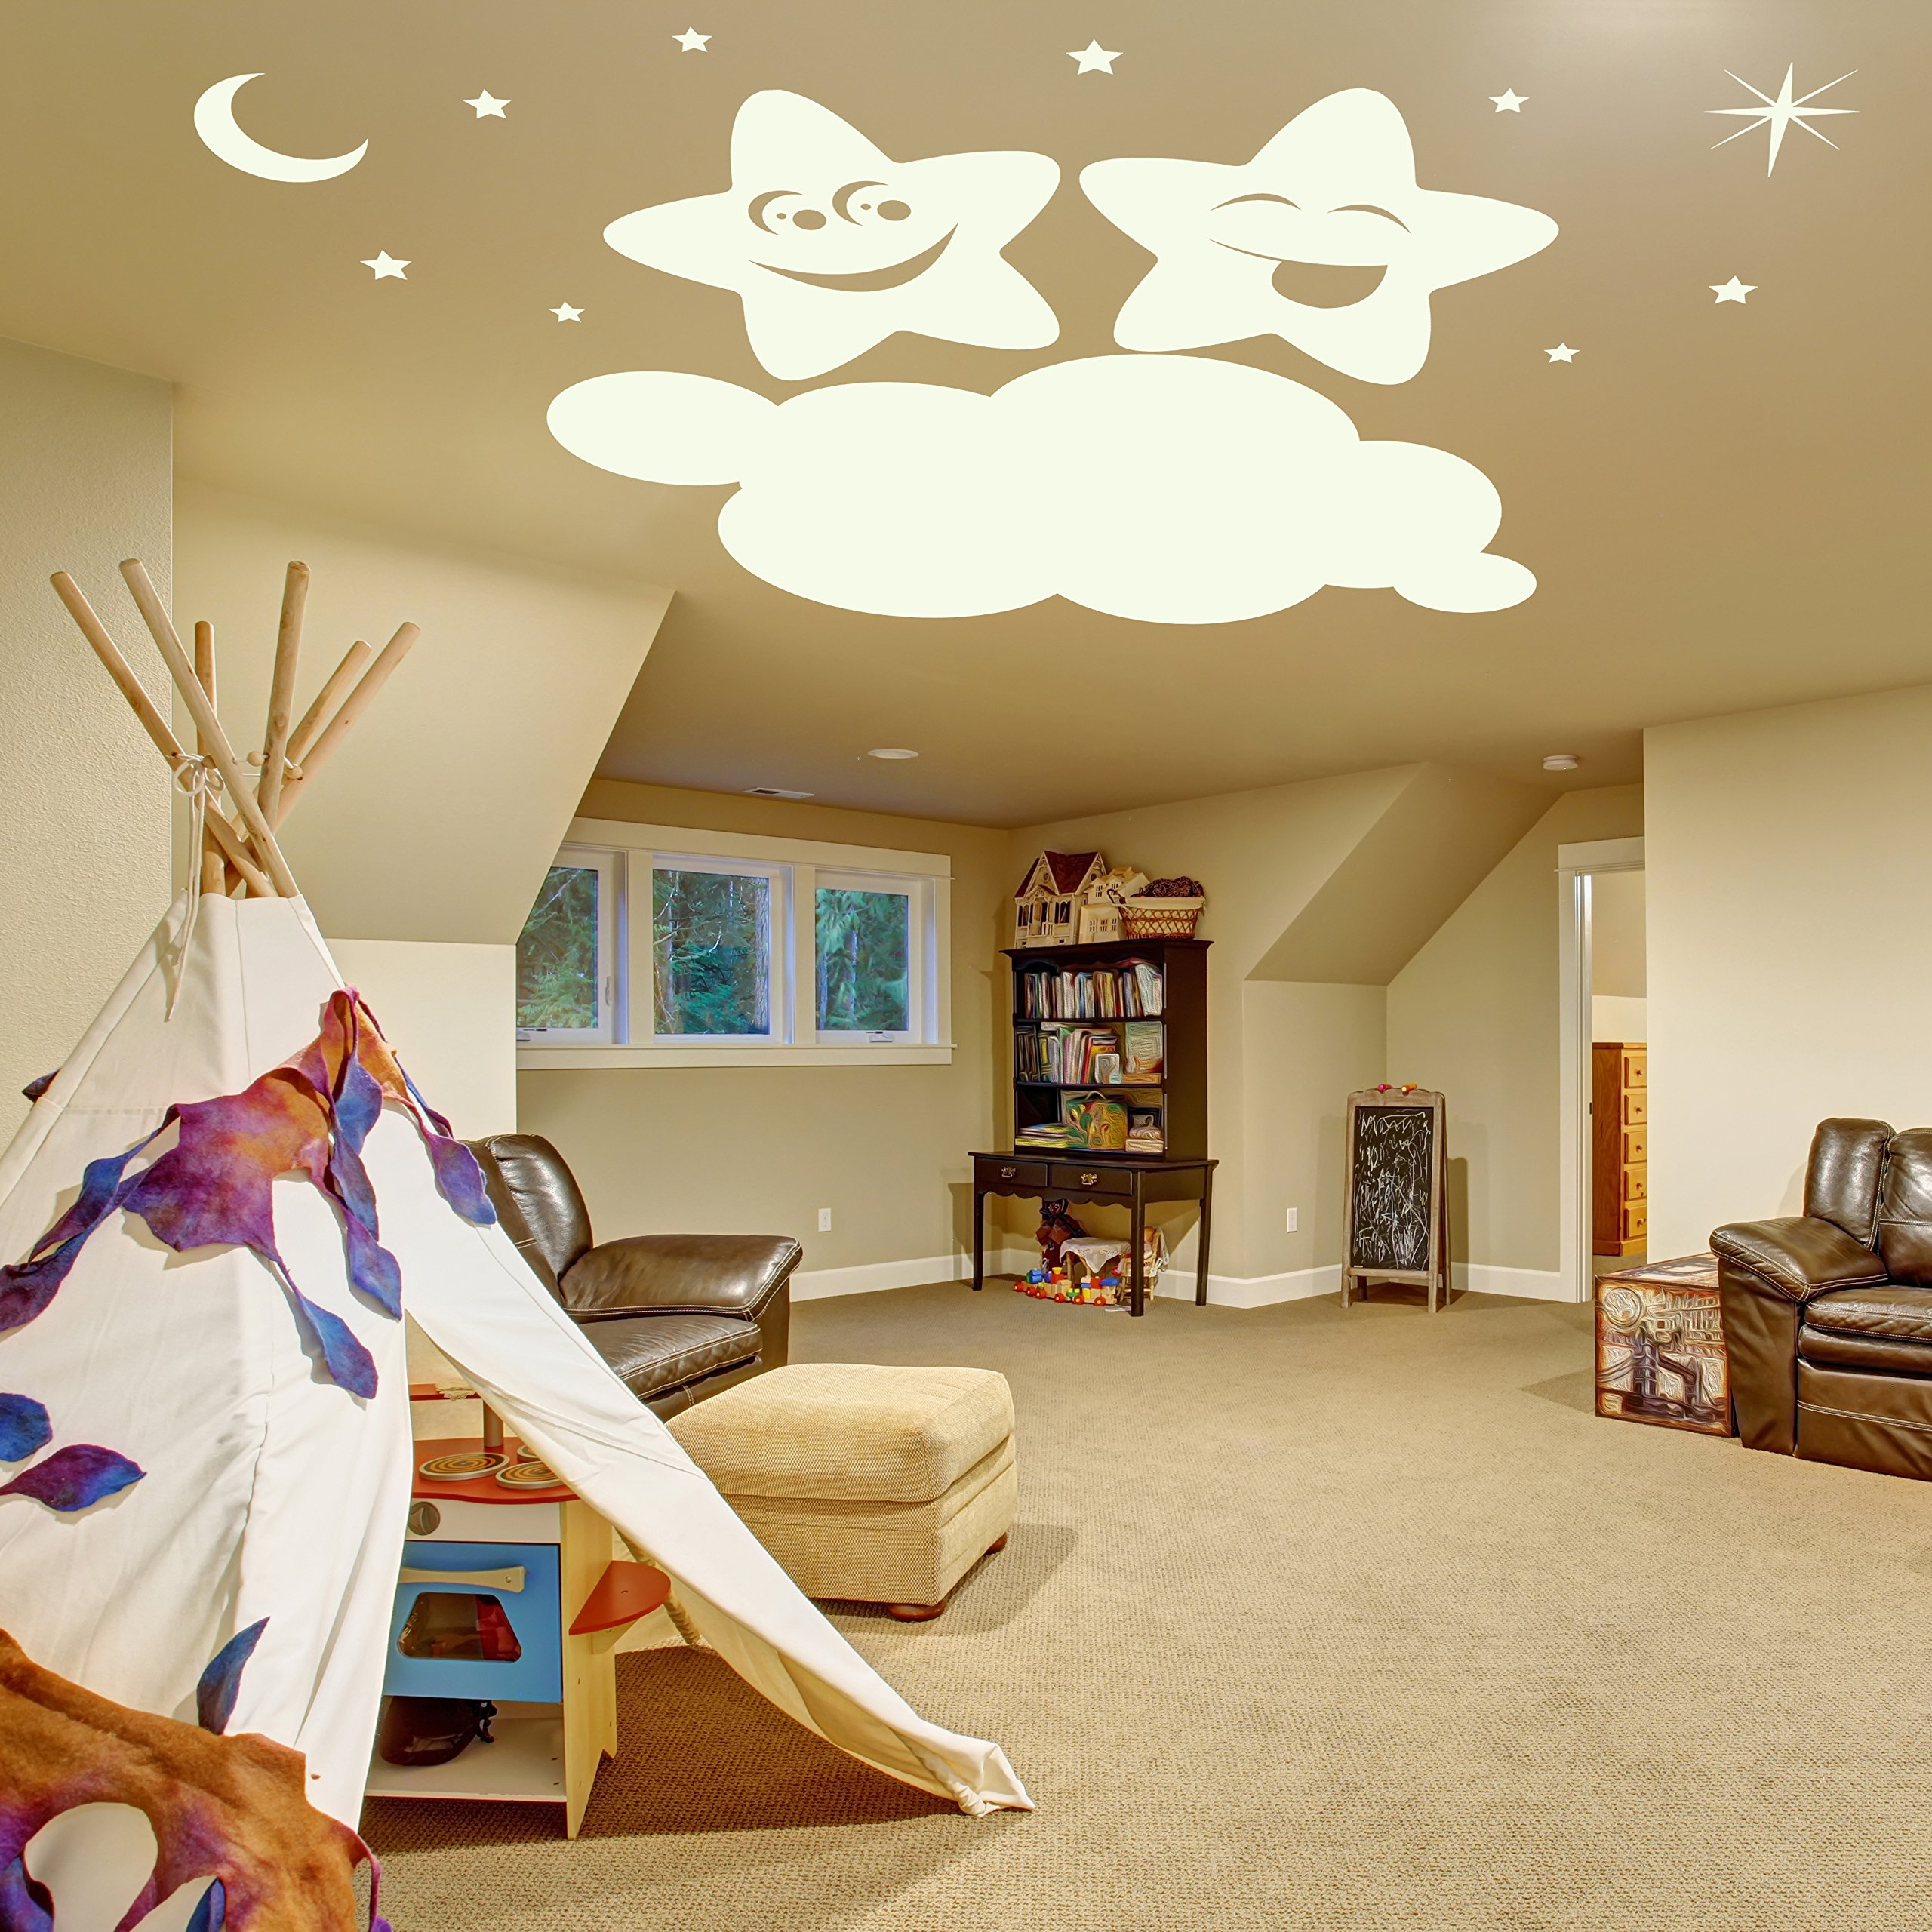 ( 79'' x 52'' ) Glowing Vinyl Wall Decal Twin Stars on Cloud / Glow in the Dark Sticker / Happy Star Luminescent Mural Kids, Baby Room + Free Decal Gift!